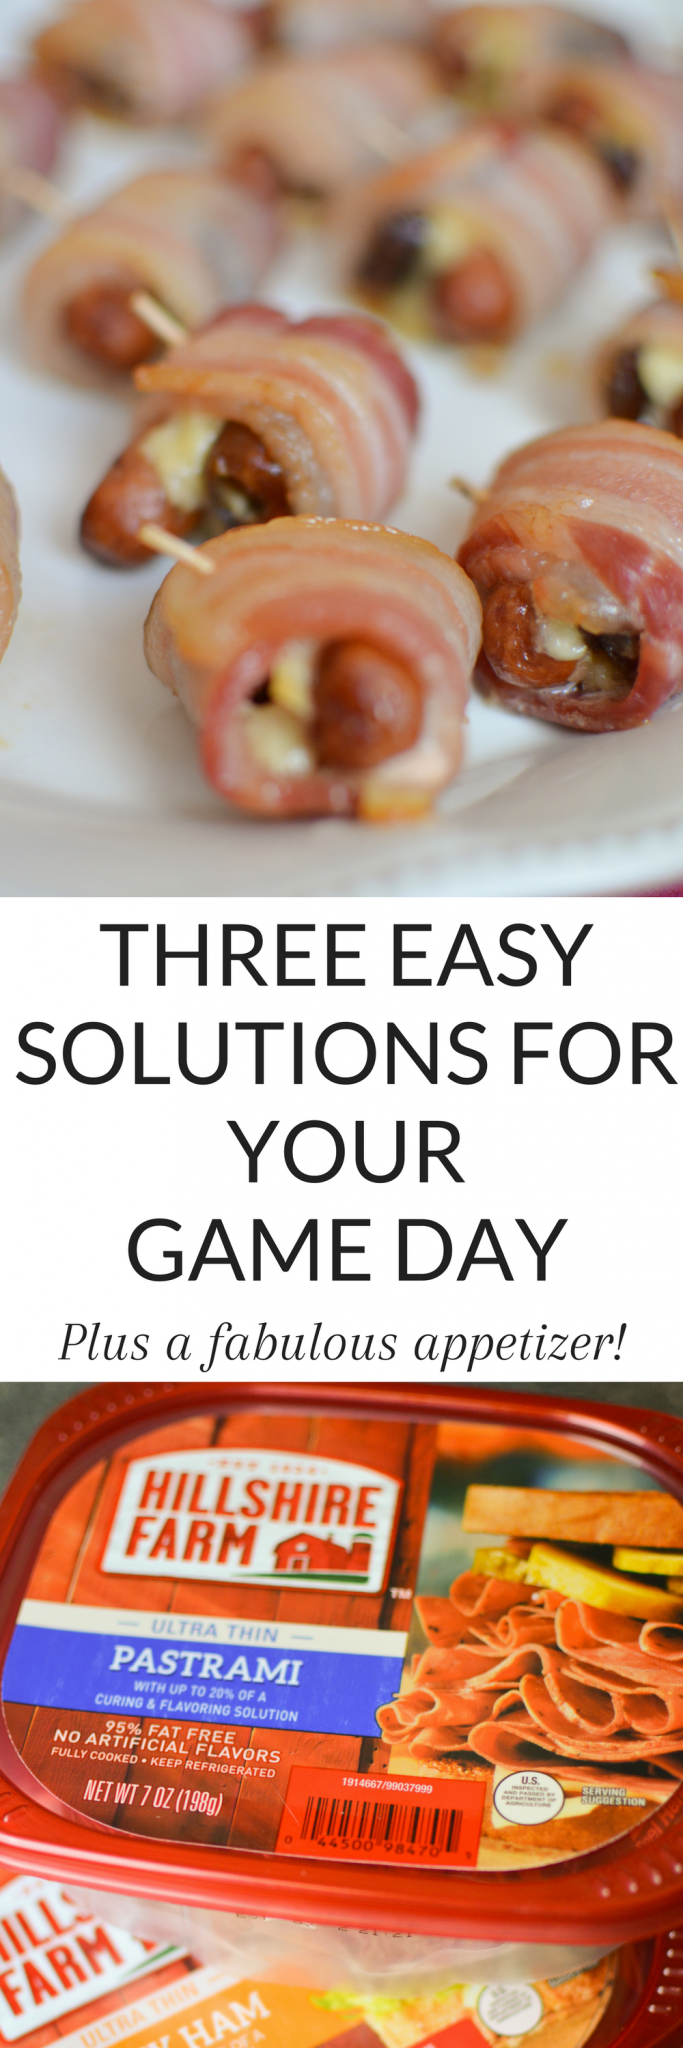 #AD Hosting during football season can be stressful, so let's make it easier! See how I used the best @Tyson and @HillshireFarm products from #Walmart for easy, tasty Game Day Food! #TysonWinningLineup